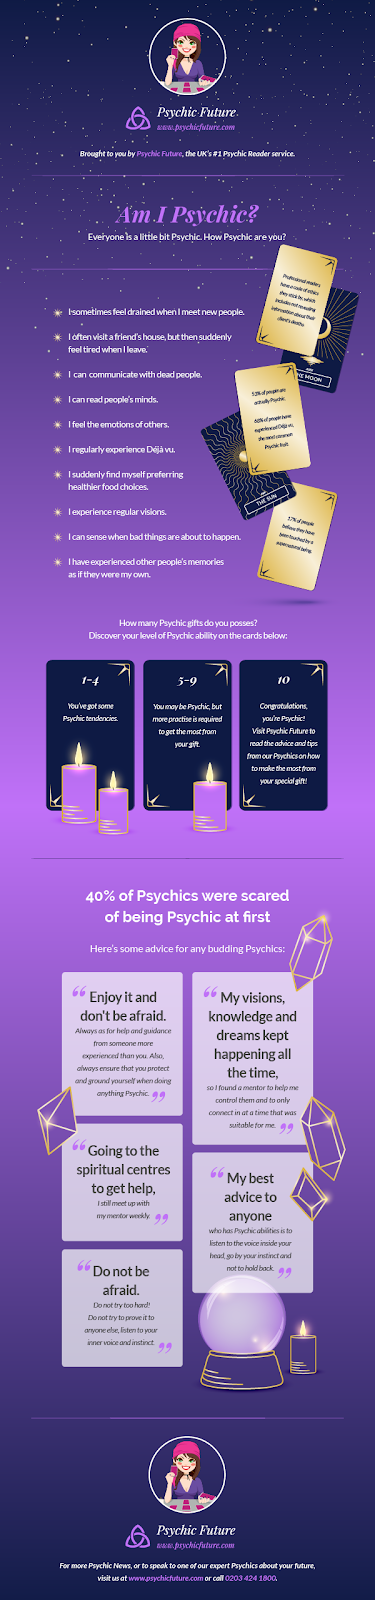 am i psychic infographic